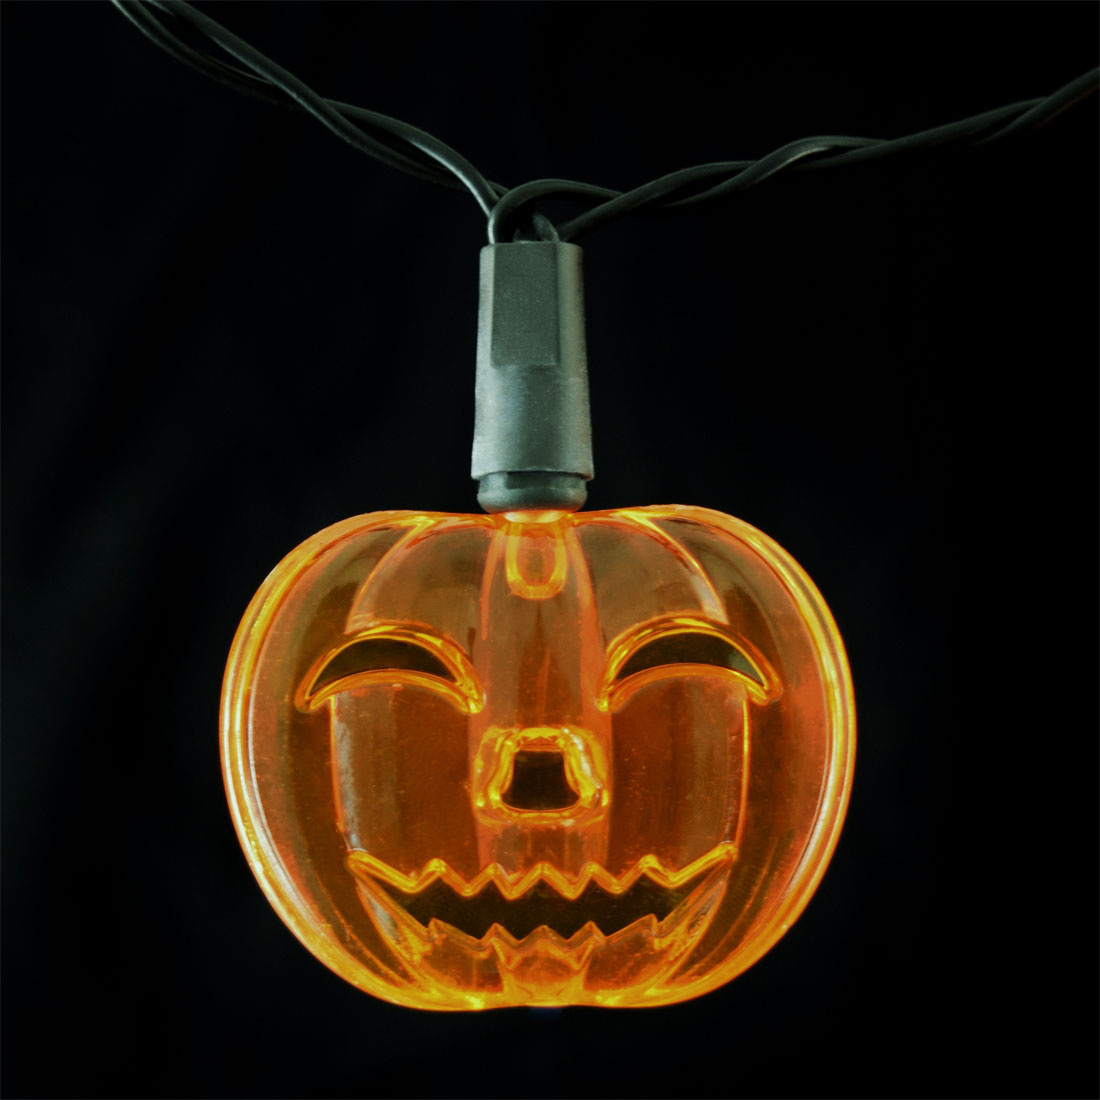 Pumpkin LED Party String Lights - Battery Operated - 10 Lights